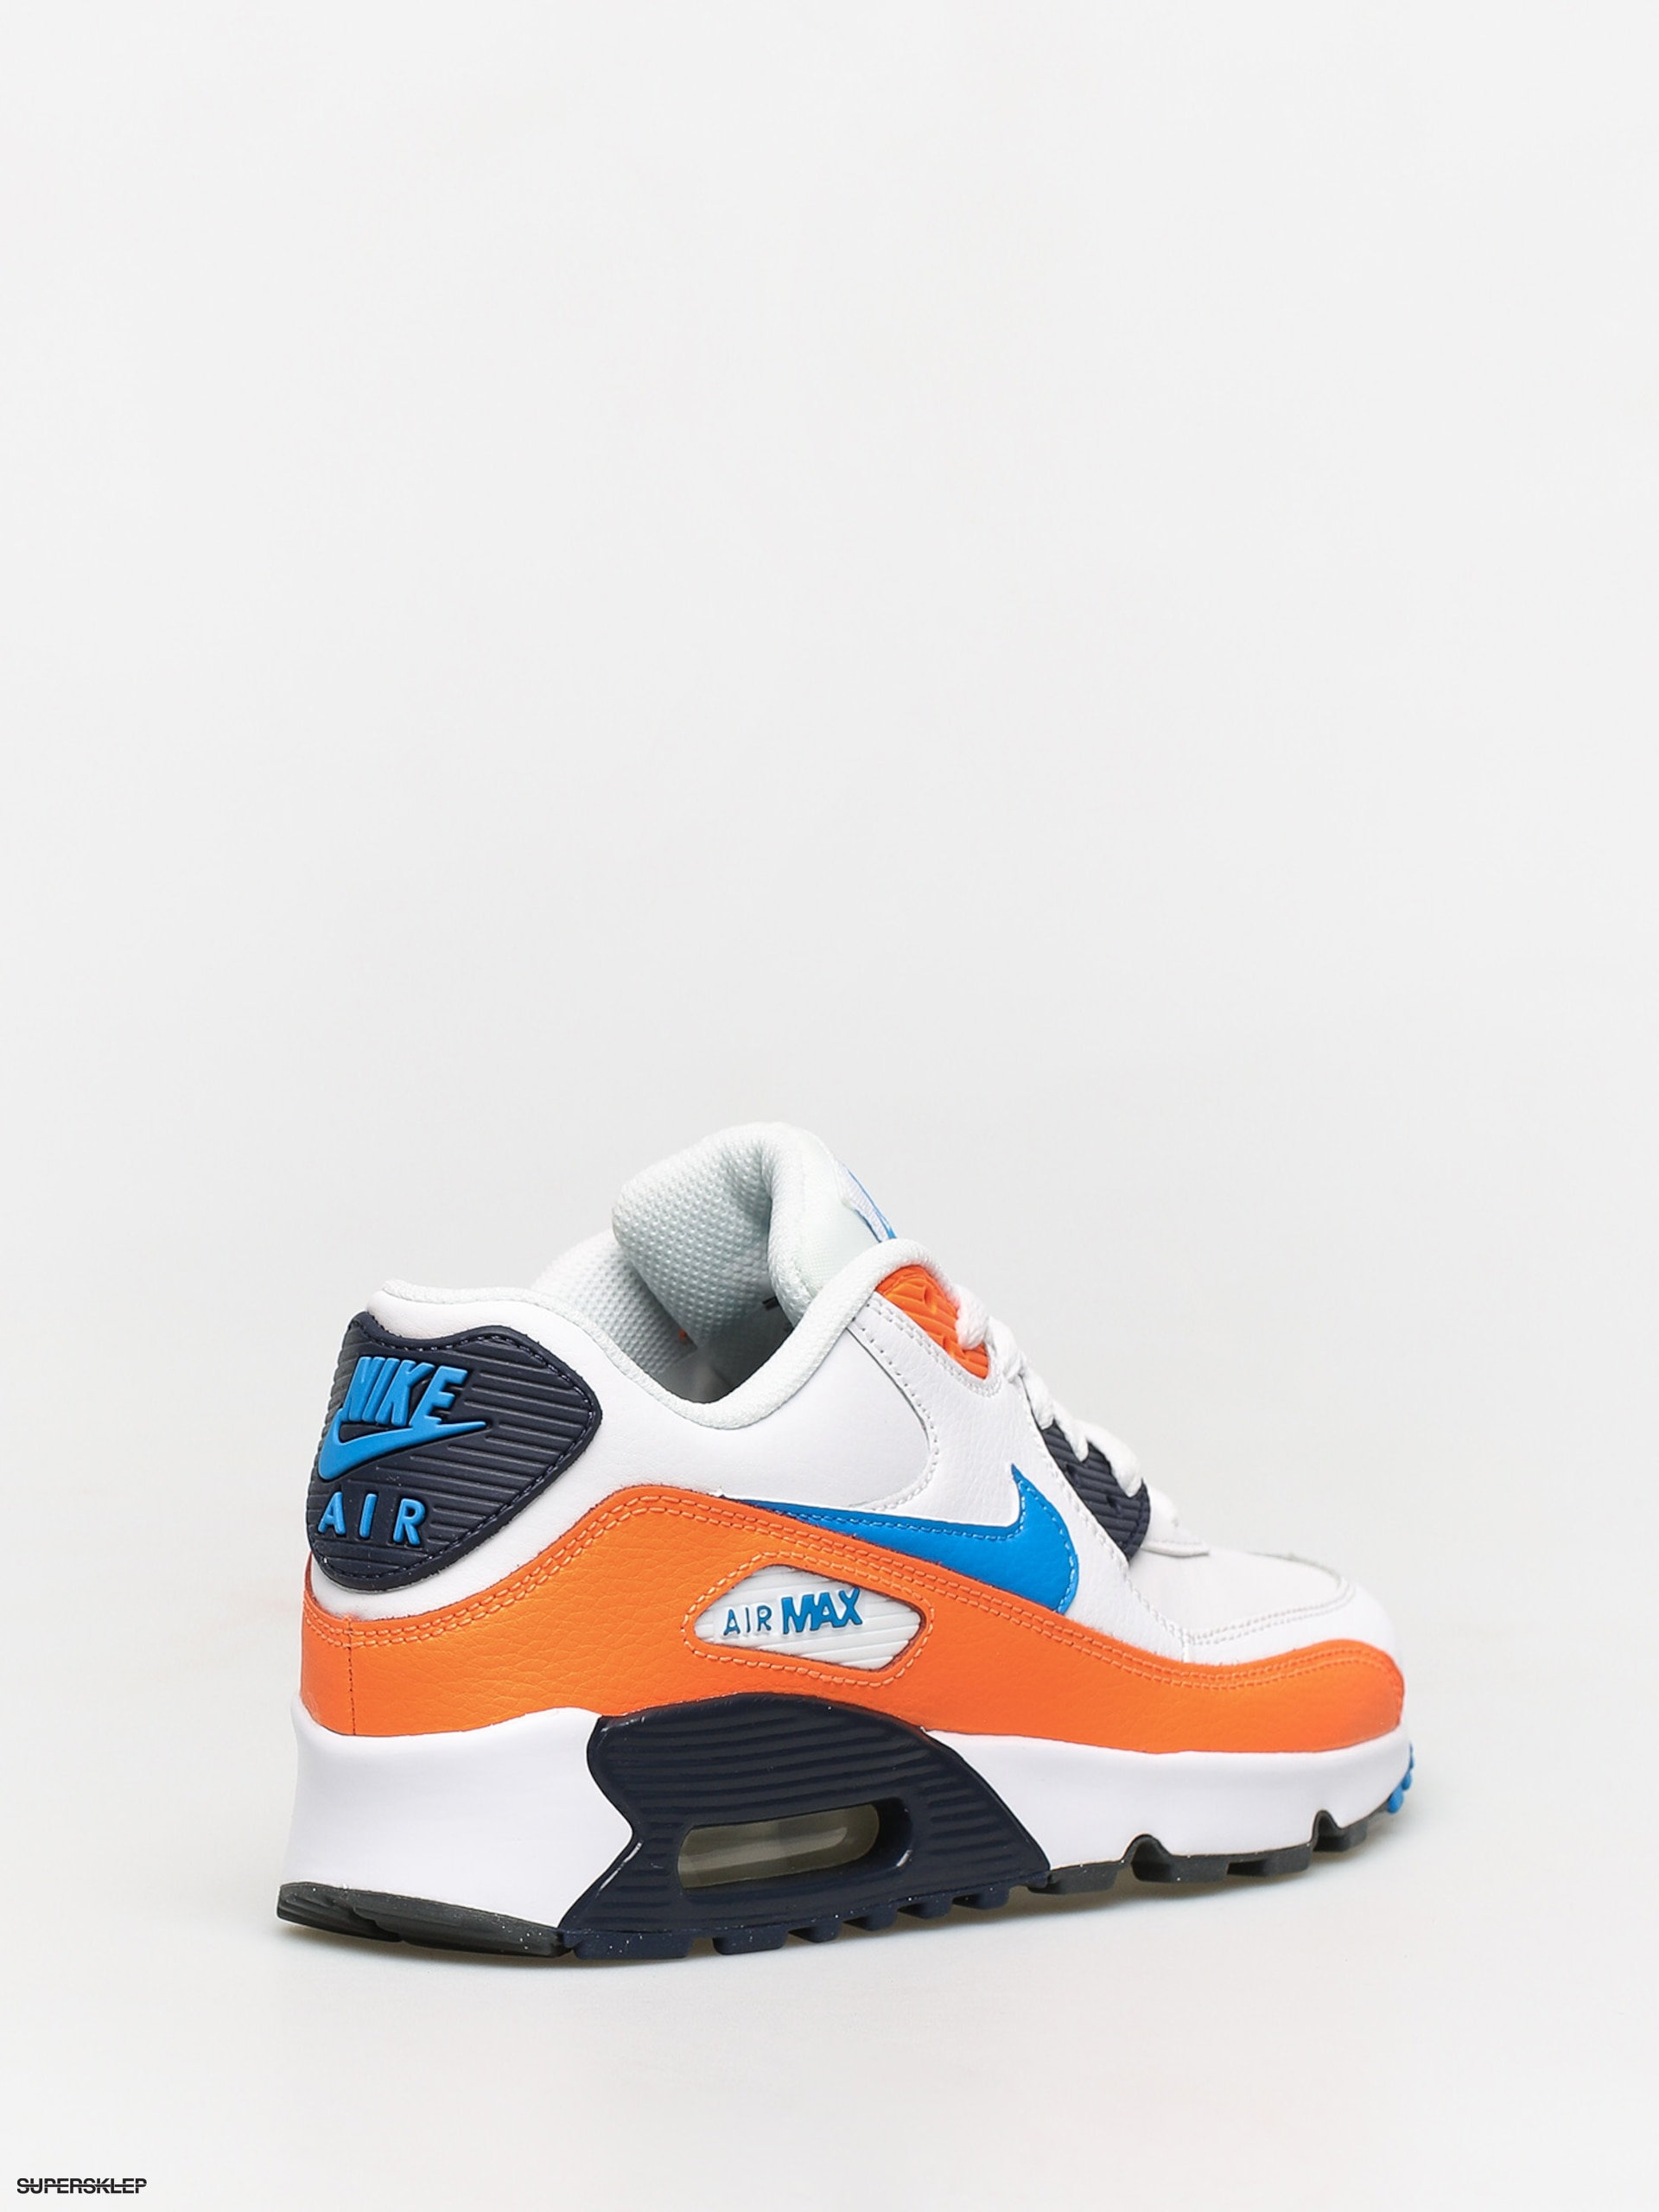 Perfectly Grey Air Max 90 Leather Sneakers Nike Orange Blue